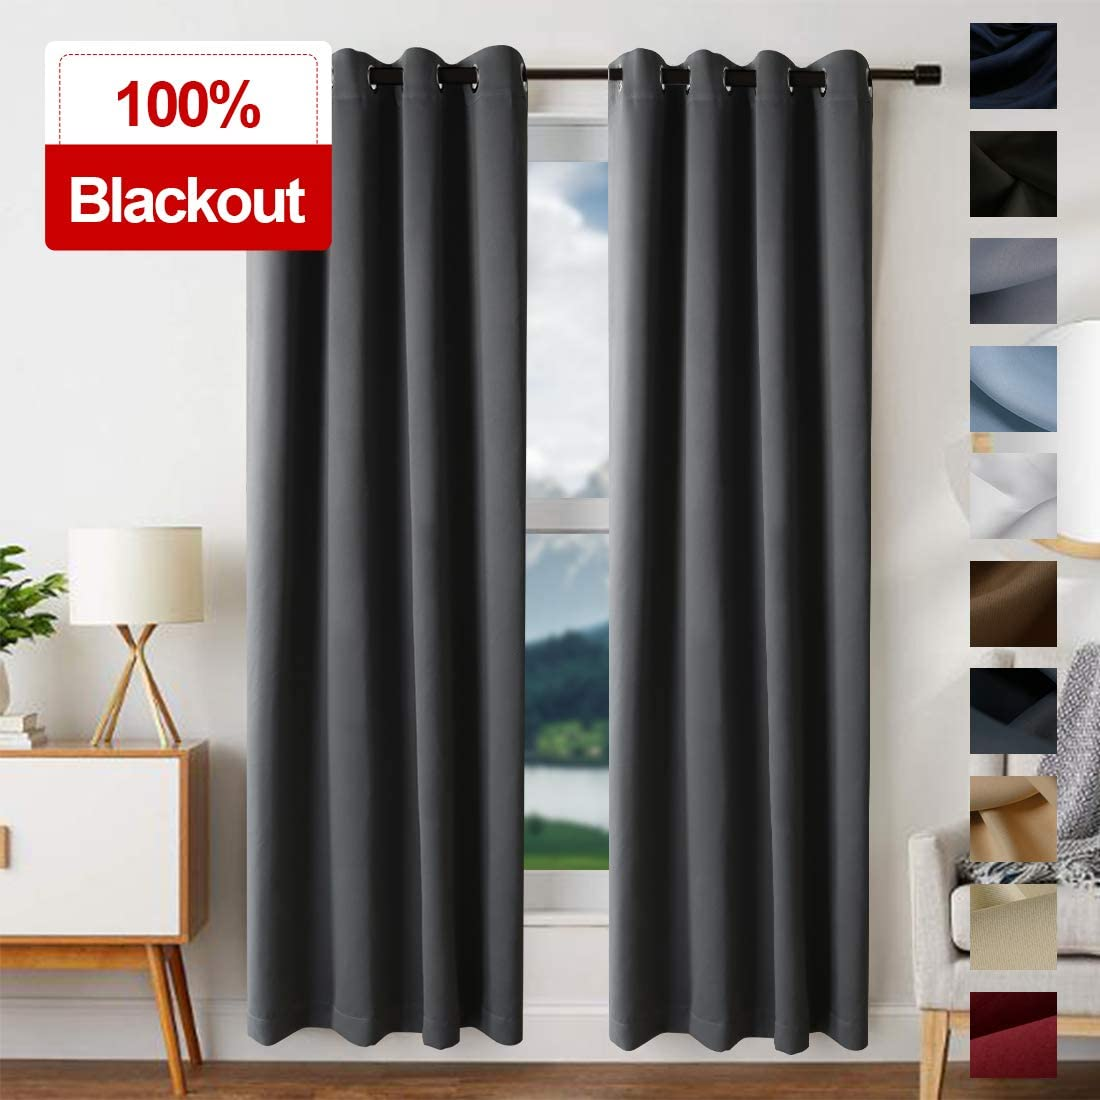 EDILLY Blackout Curtains for Bedroom Thermal Insulated Blackout Grommet Window Curtain Panel for Living Room Window Treatment 2 Panels, W52xL95 inch Length, Dark Gray